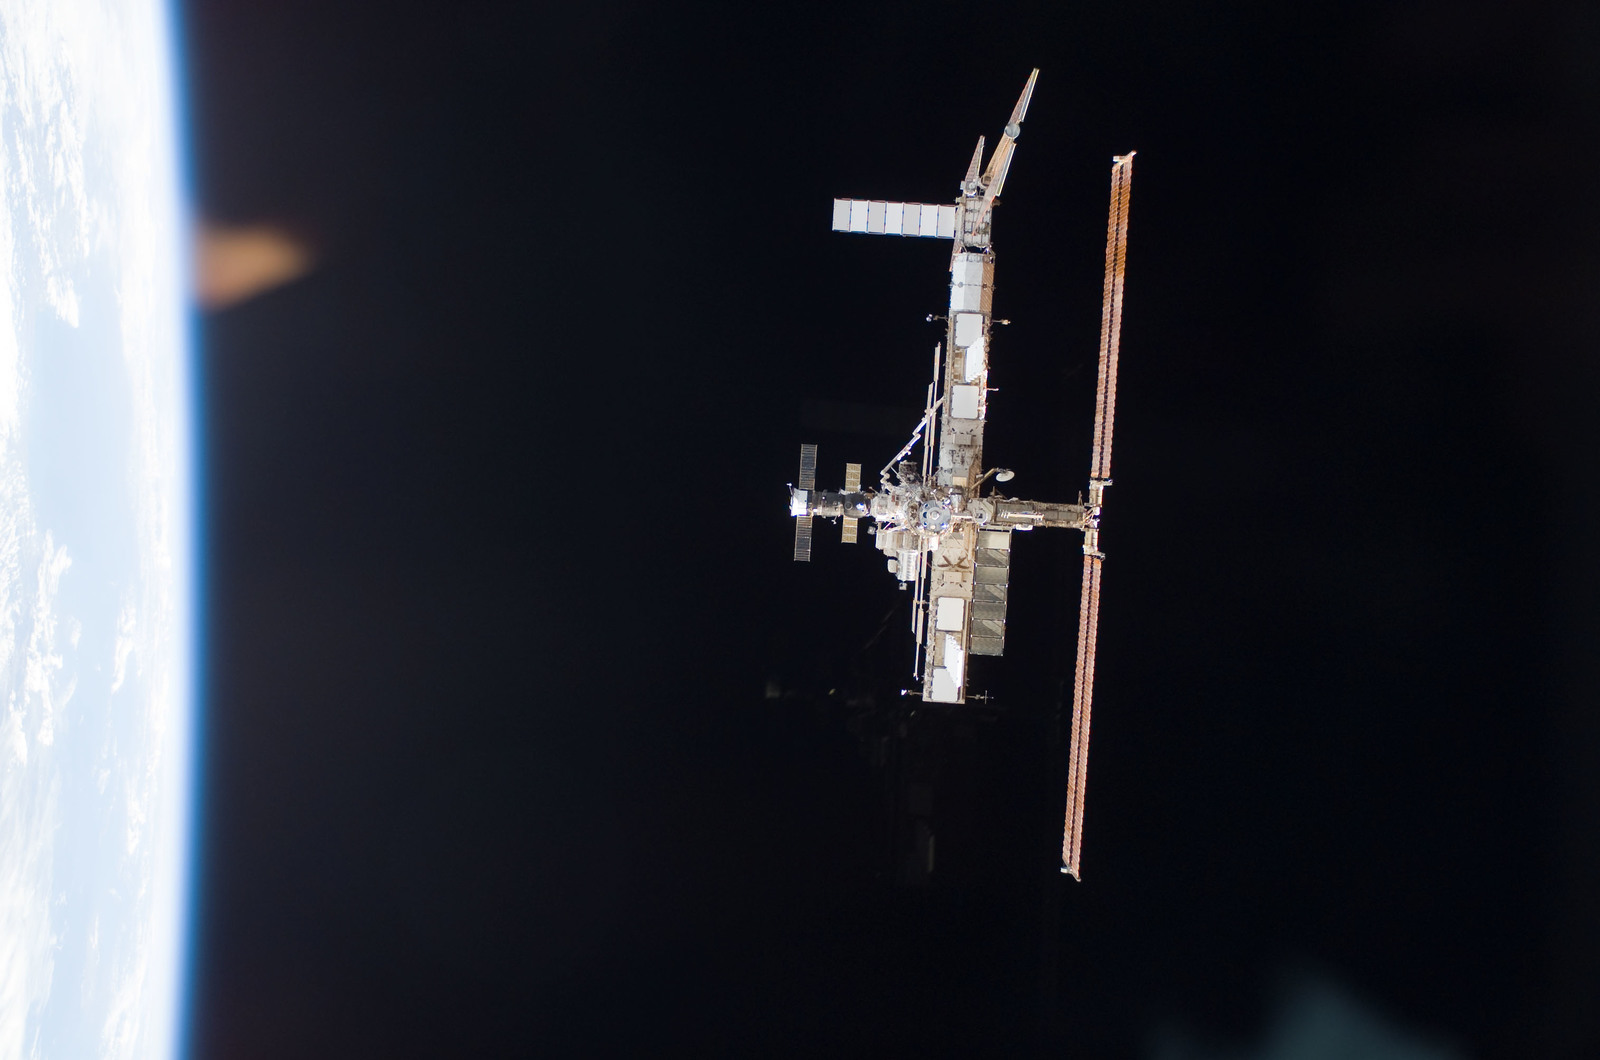 S115E06702 - STS-115 - Overall exterior view of the ISS during undocking and Flyaround Operations for STS-115 Space Shuttle Atlantis